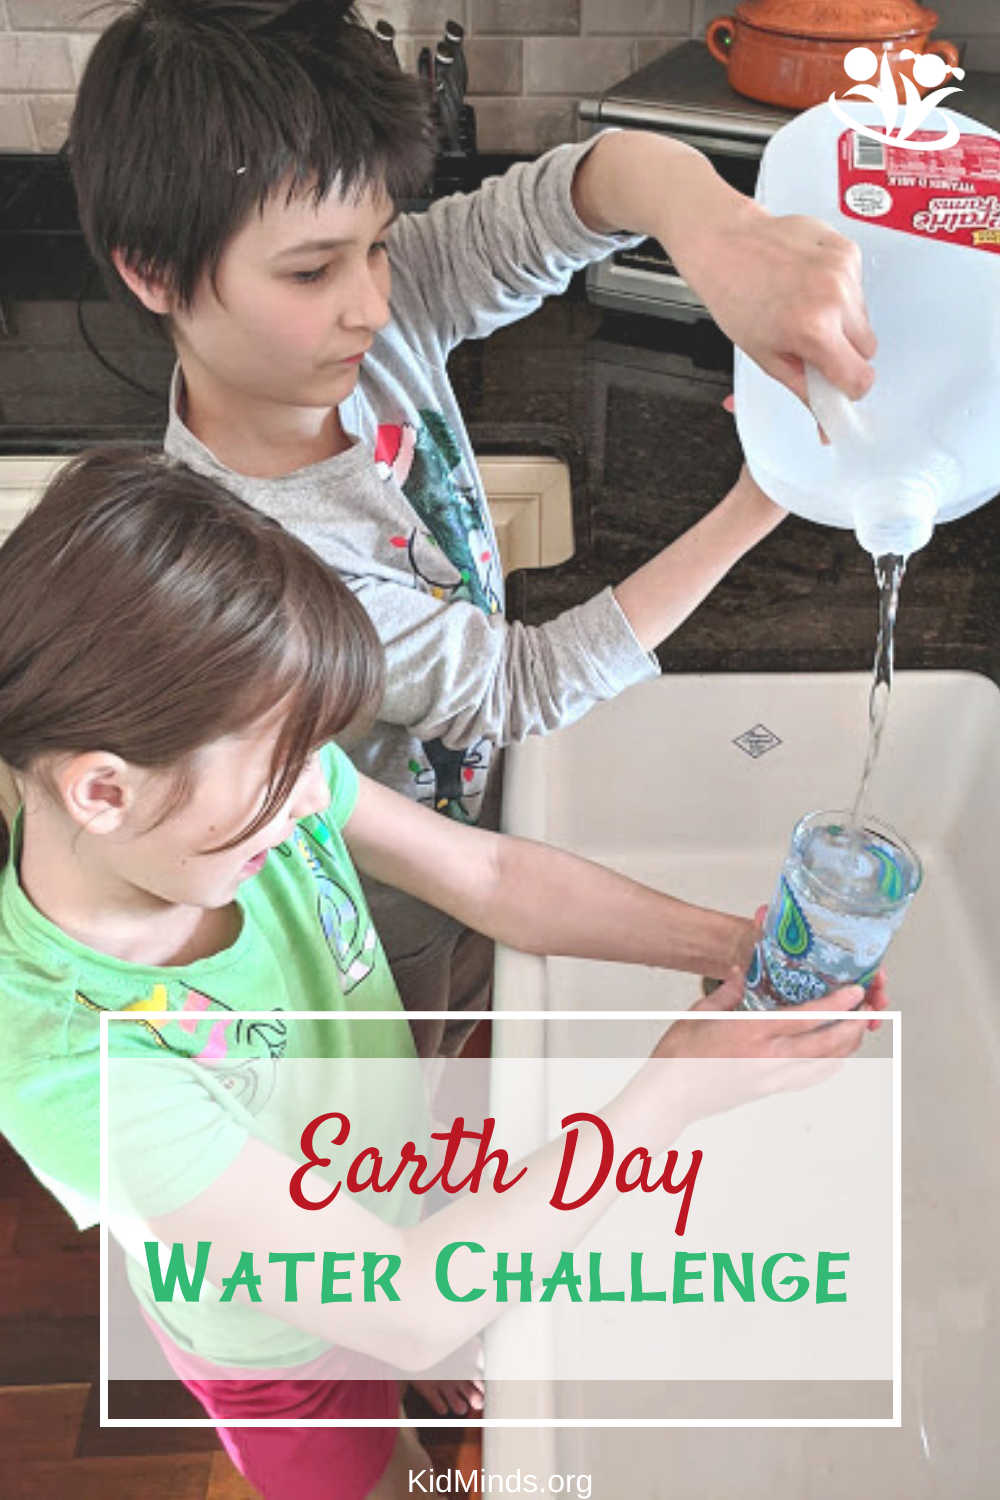 Fun Earth Day activities to inspire your kids and show them how they can help save the planet. Try our low-prep Earth Day Water Challenge to transform their thinking about water.   #EarthDay #handsonlearning #creativelearning #KidMinds #EarthDayActivities #waterchallenge #earlylearning #homeschollife